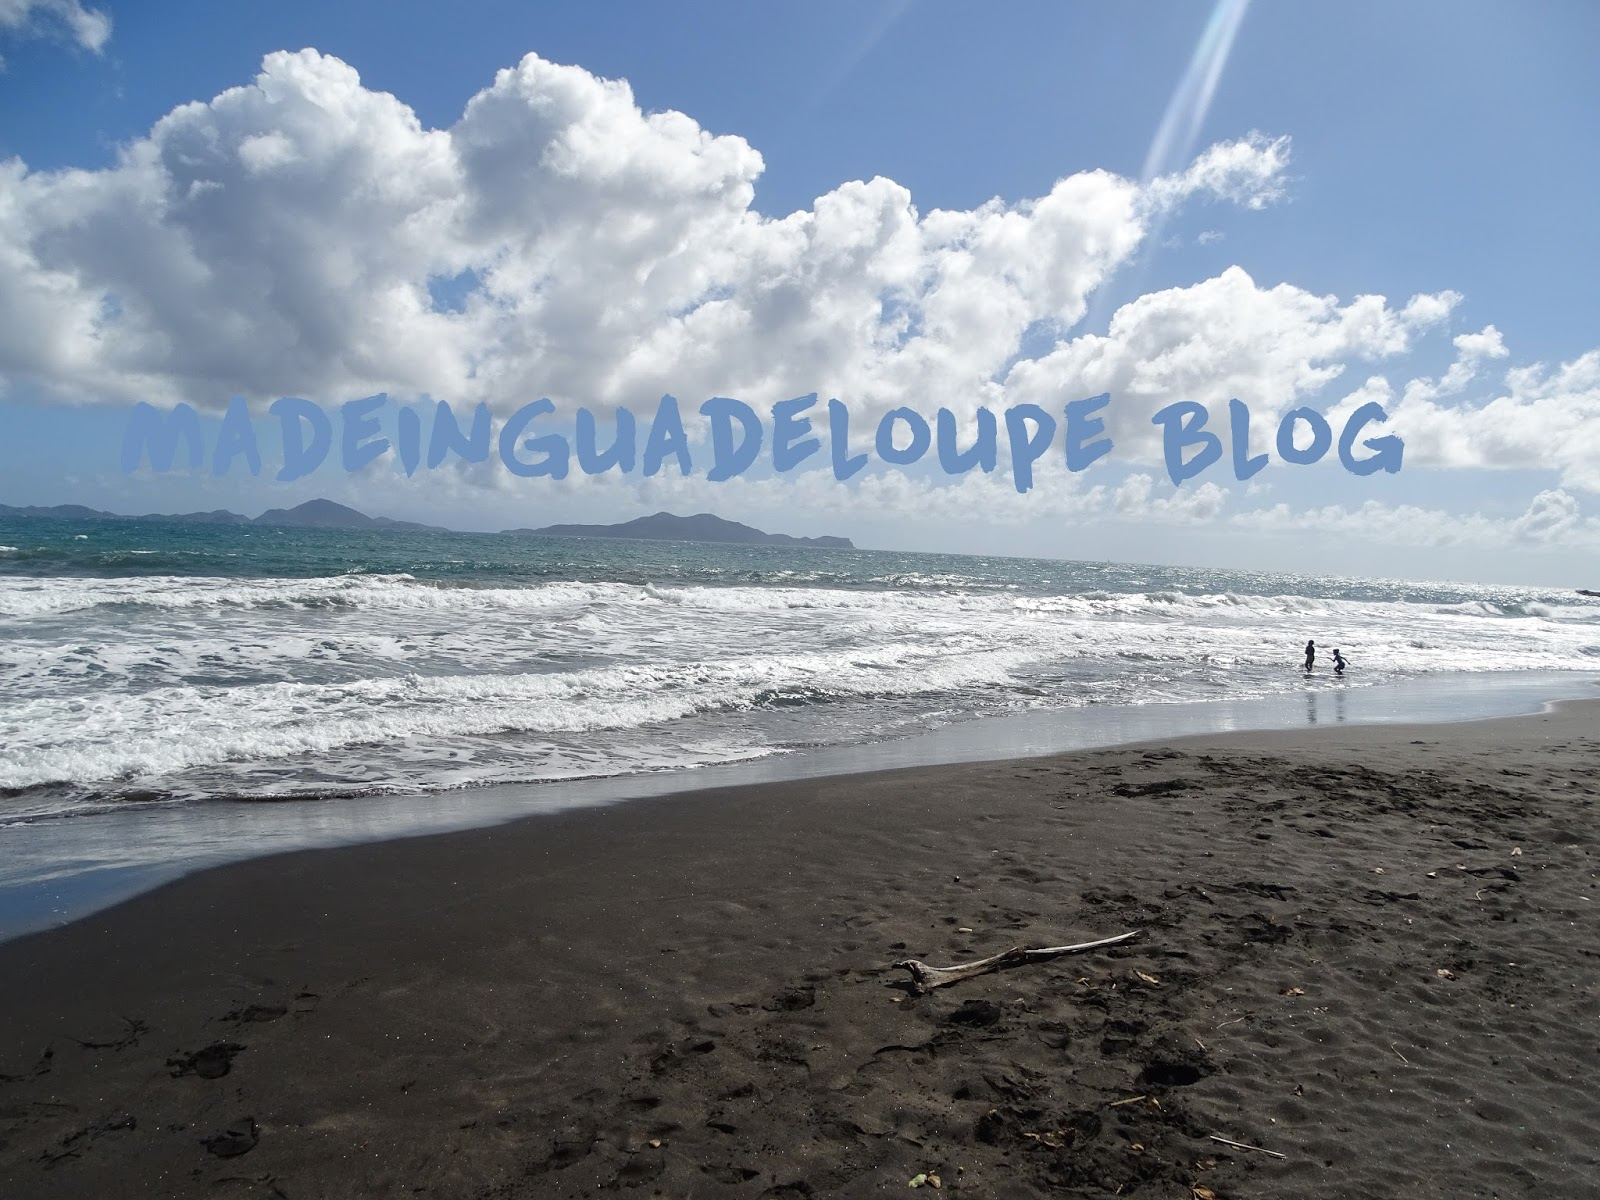 iles de guadeloupe meilleure destination caraibe antilles islands caribbean best destination